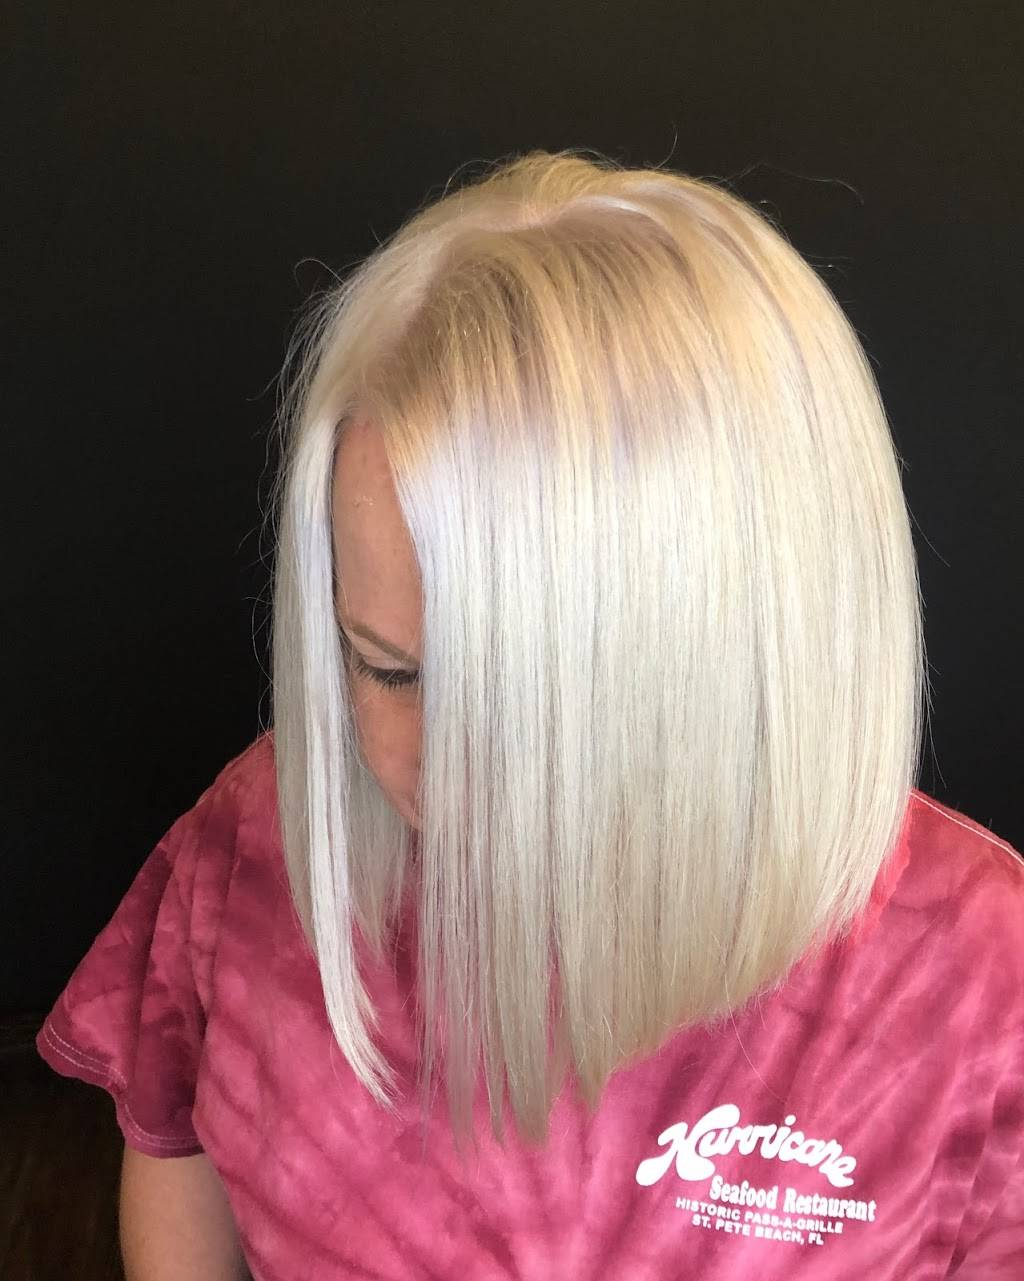 Currin Marcum at Roots Salon - hair care    Photo 10 of 10   Address: 6299 Central Ave, St. Petersburg, FL 33710, USA   Phone: (727) 248-9375